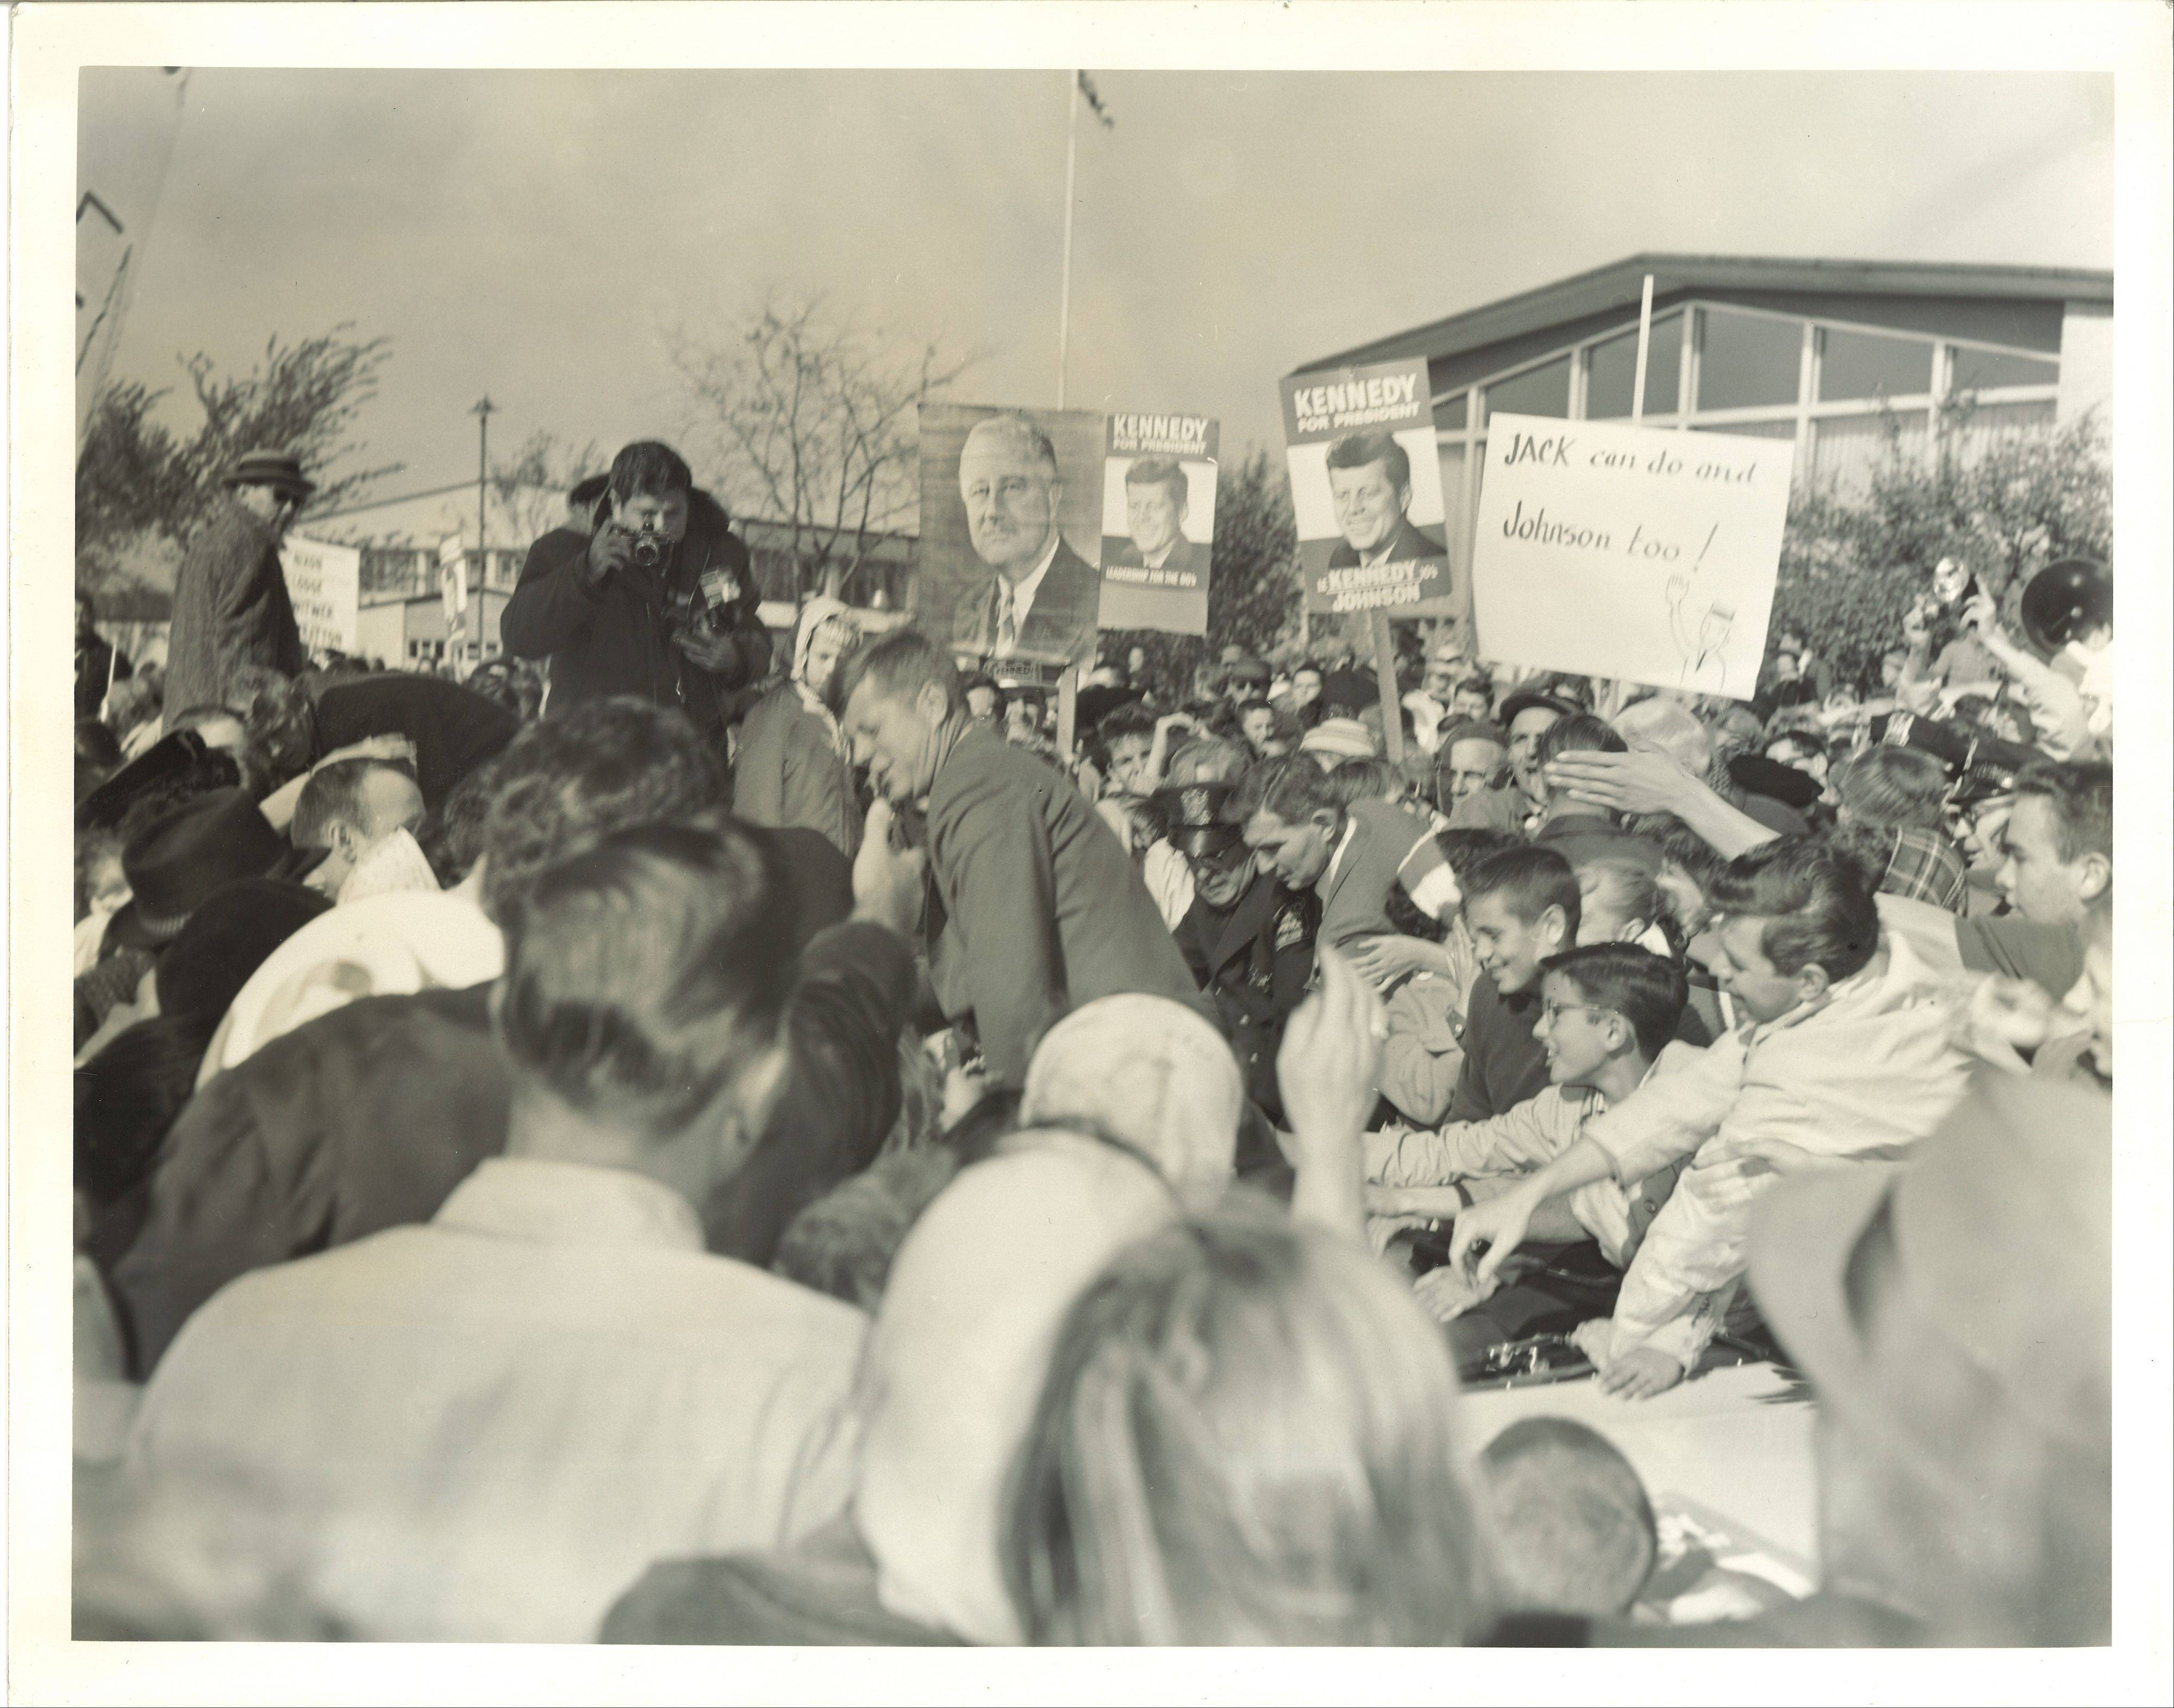 John F. Kennedy visited Barrington while on the campaign trail in 1960.